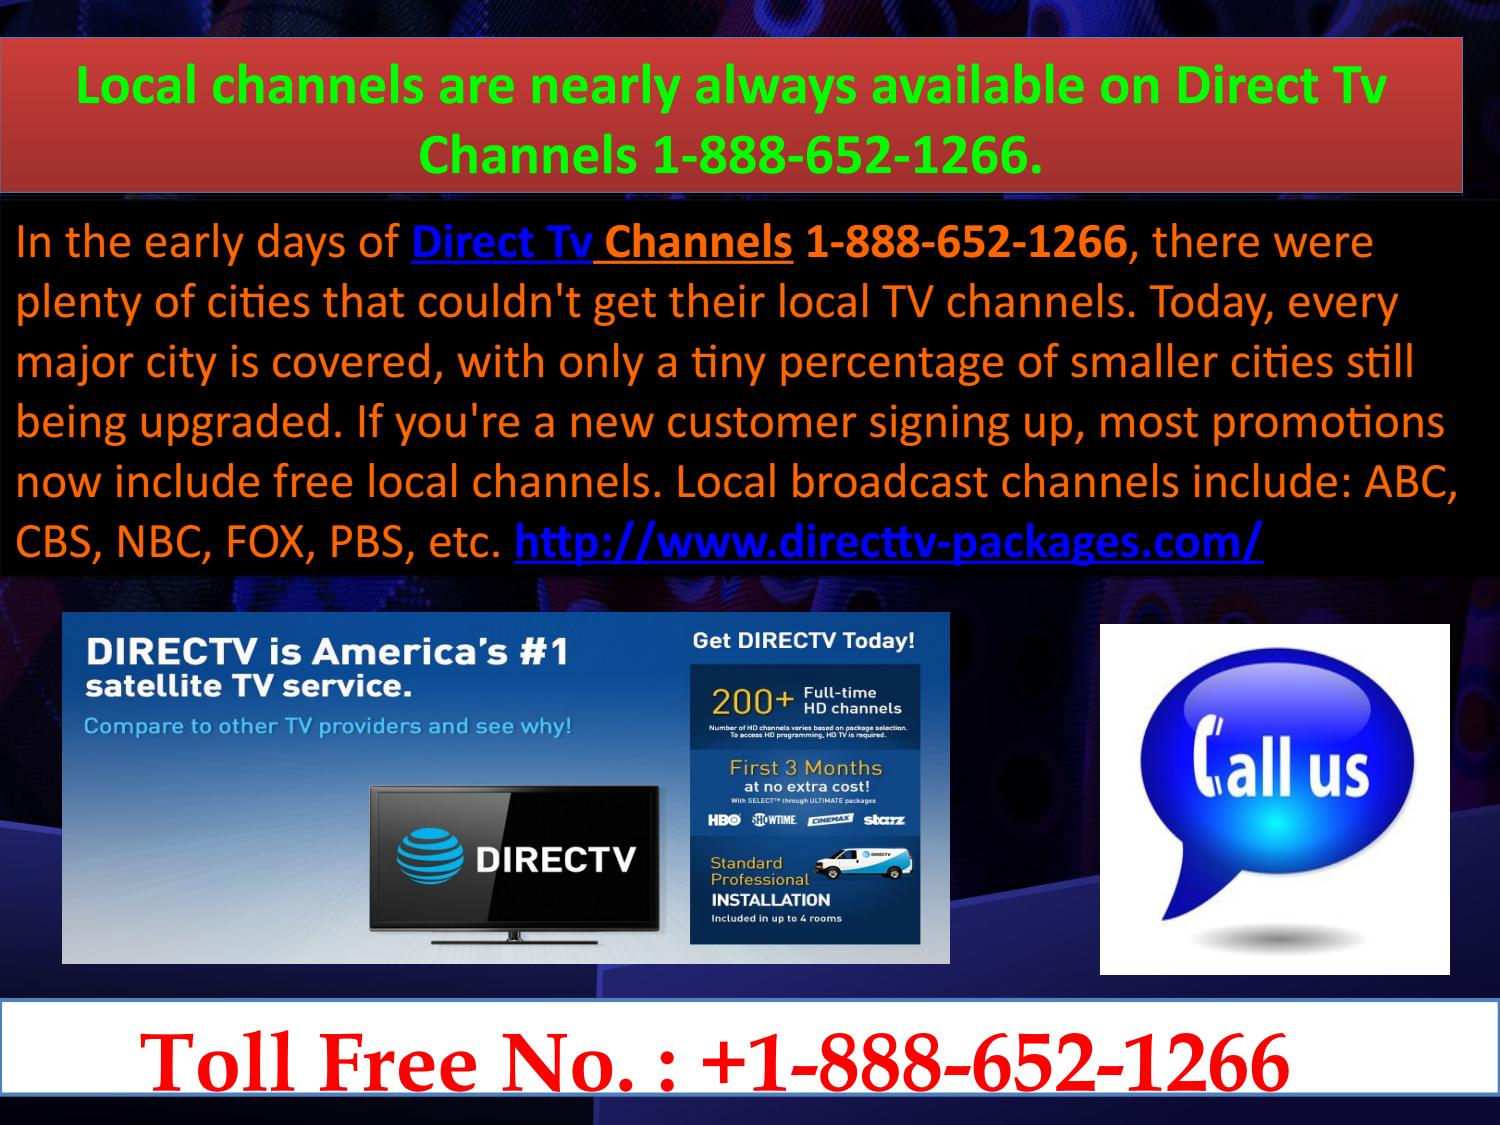 Direct Tv Specials 1-888-652-1266 carries more HD channels